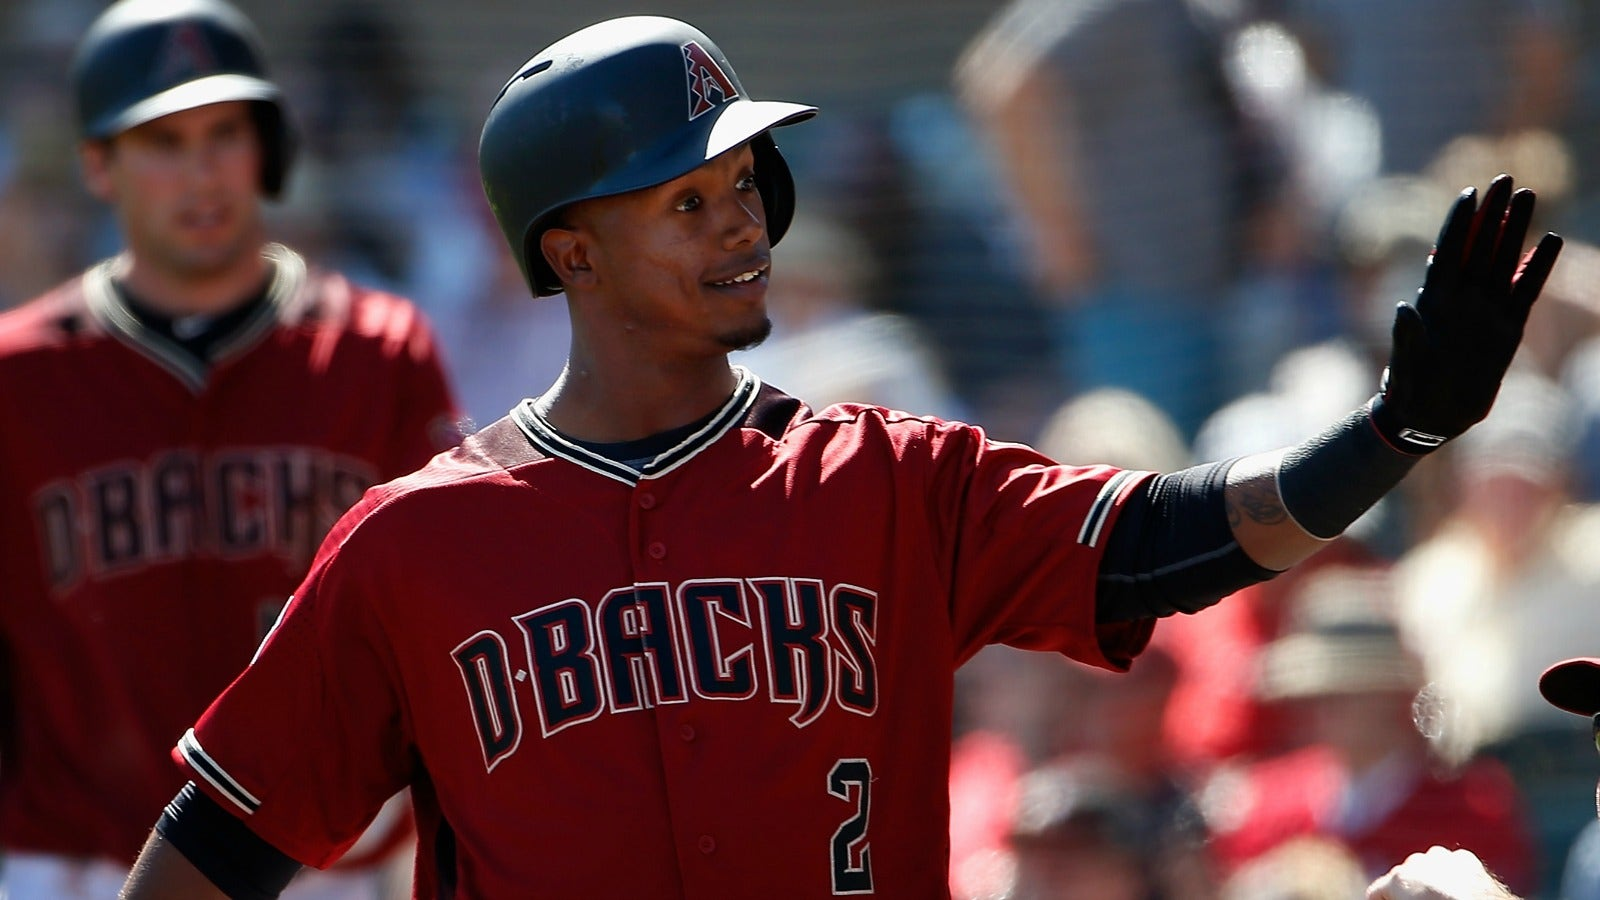 Mariners shortstop Jean Segura secured his place on the AllStar Team Wednesday night with the Final Vote having collected more than 136 million fan